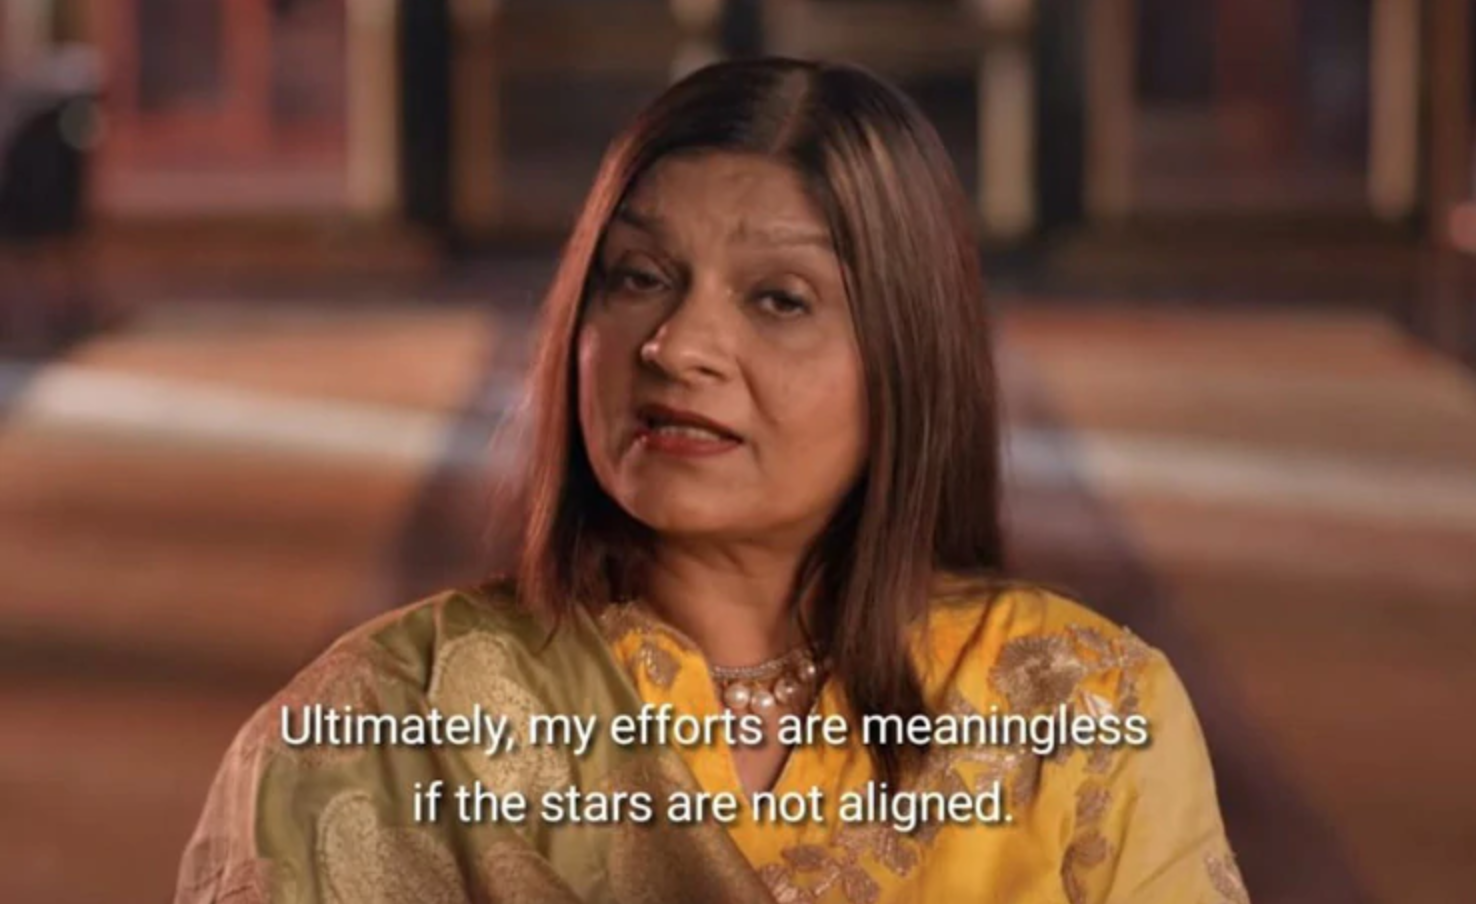 Sima Taparia is the real star of the Netflix show